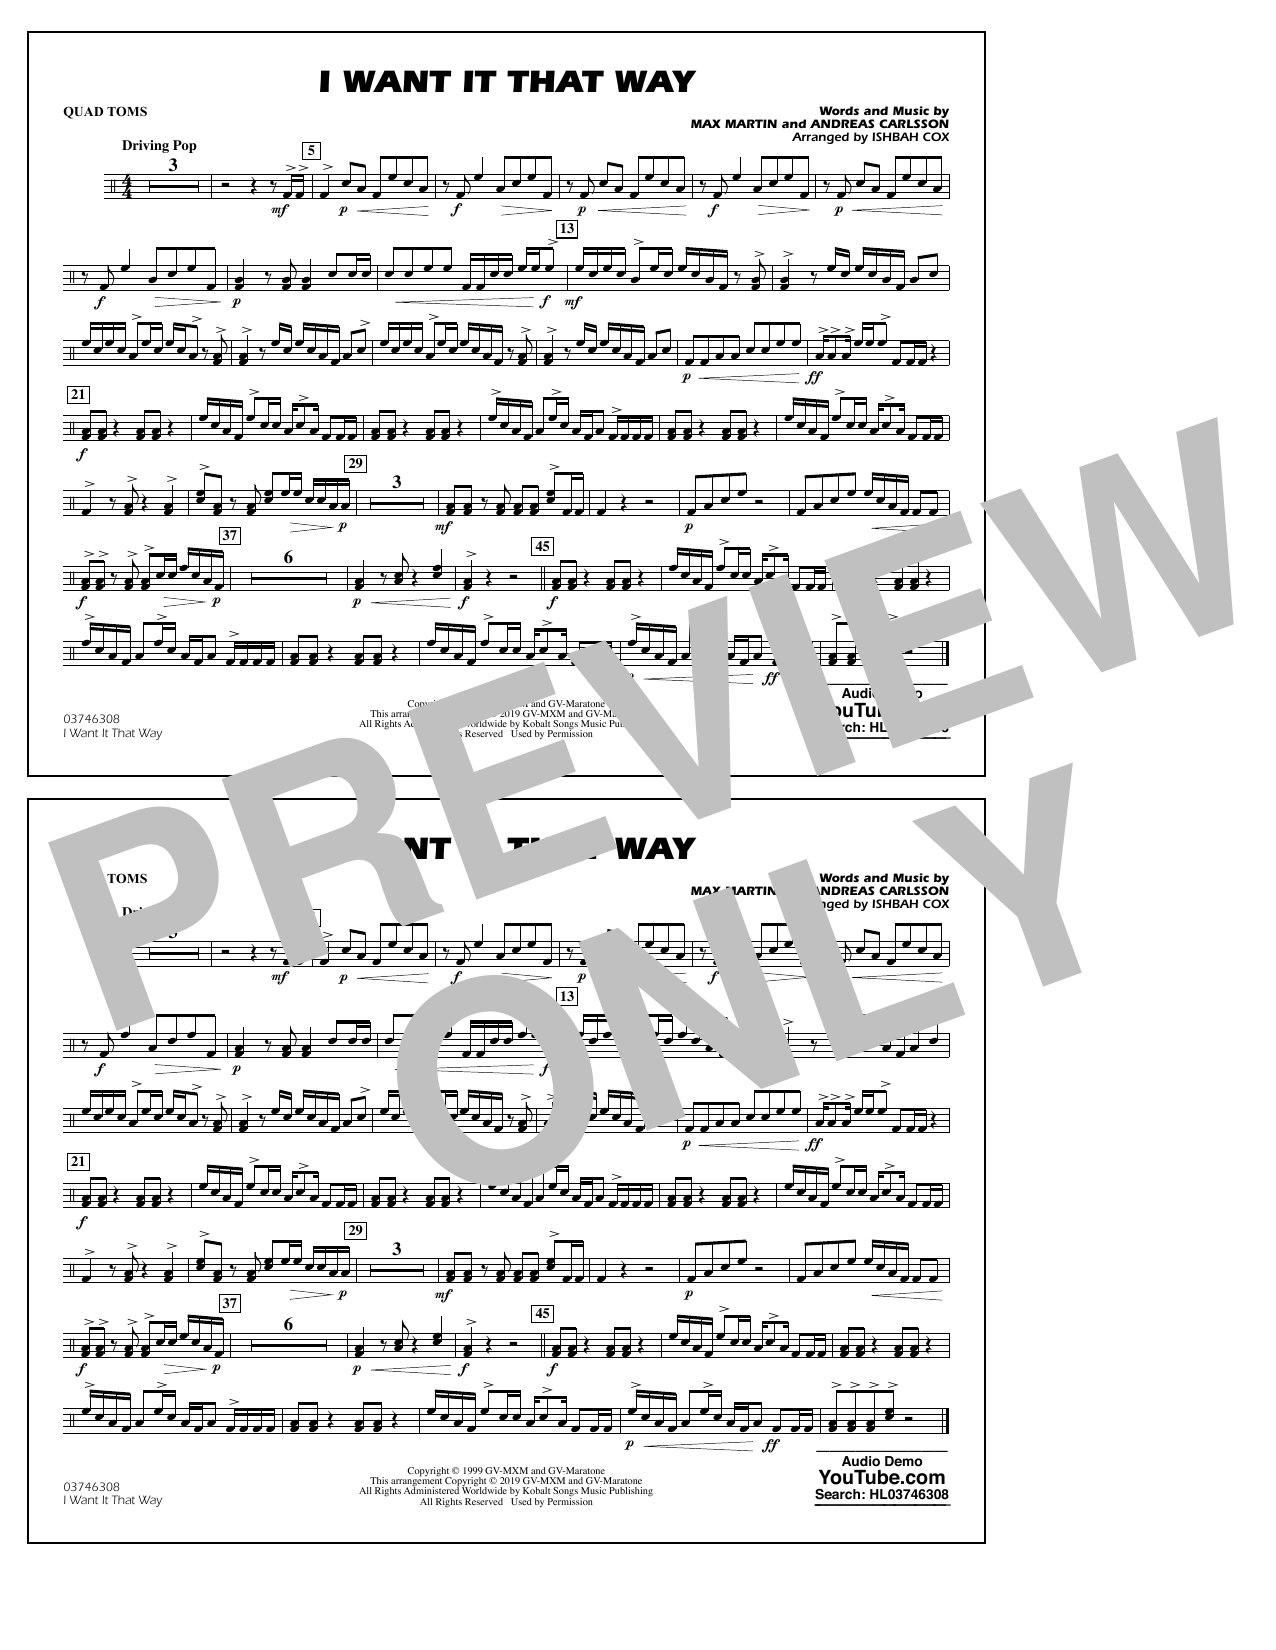 Backstreet Boys I Want It That Way (arr. Ishbah Cox) - Quad Toms sheet music notes and chords. Download Printable PDF.